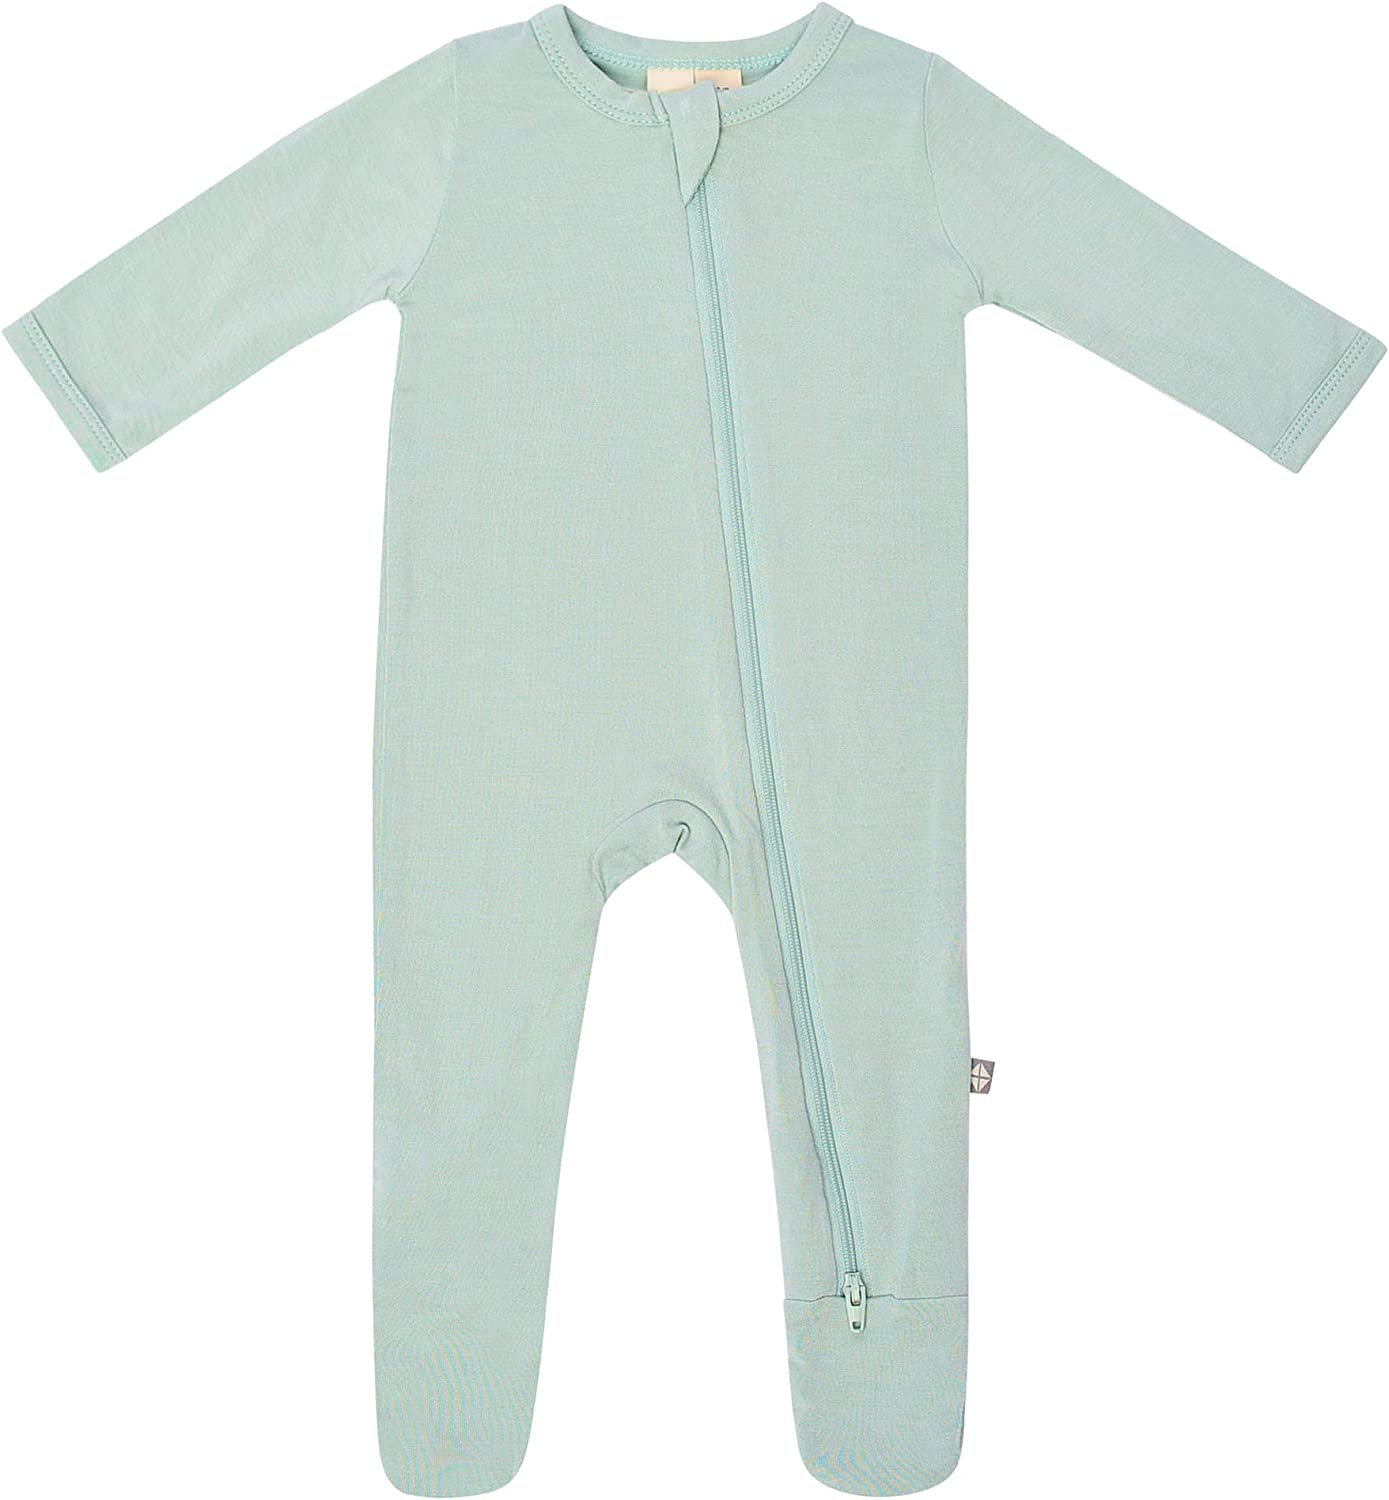 KYTE BABY Soft Bamboo Rayon Footies, Zipper Closure, 7-7 Months